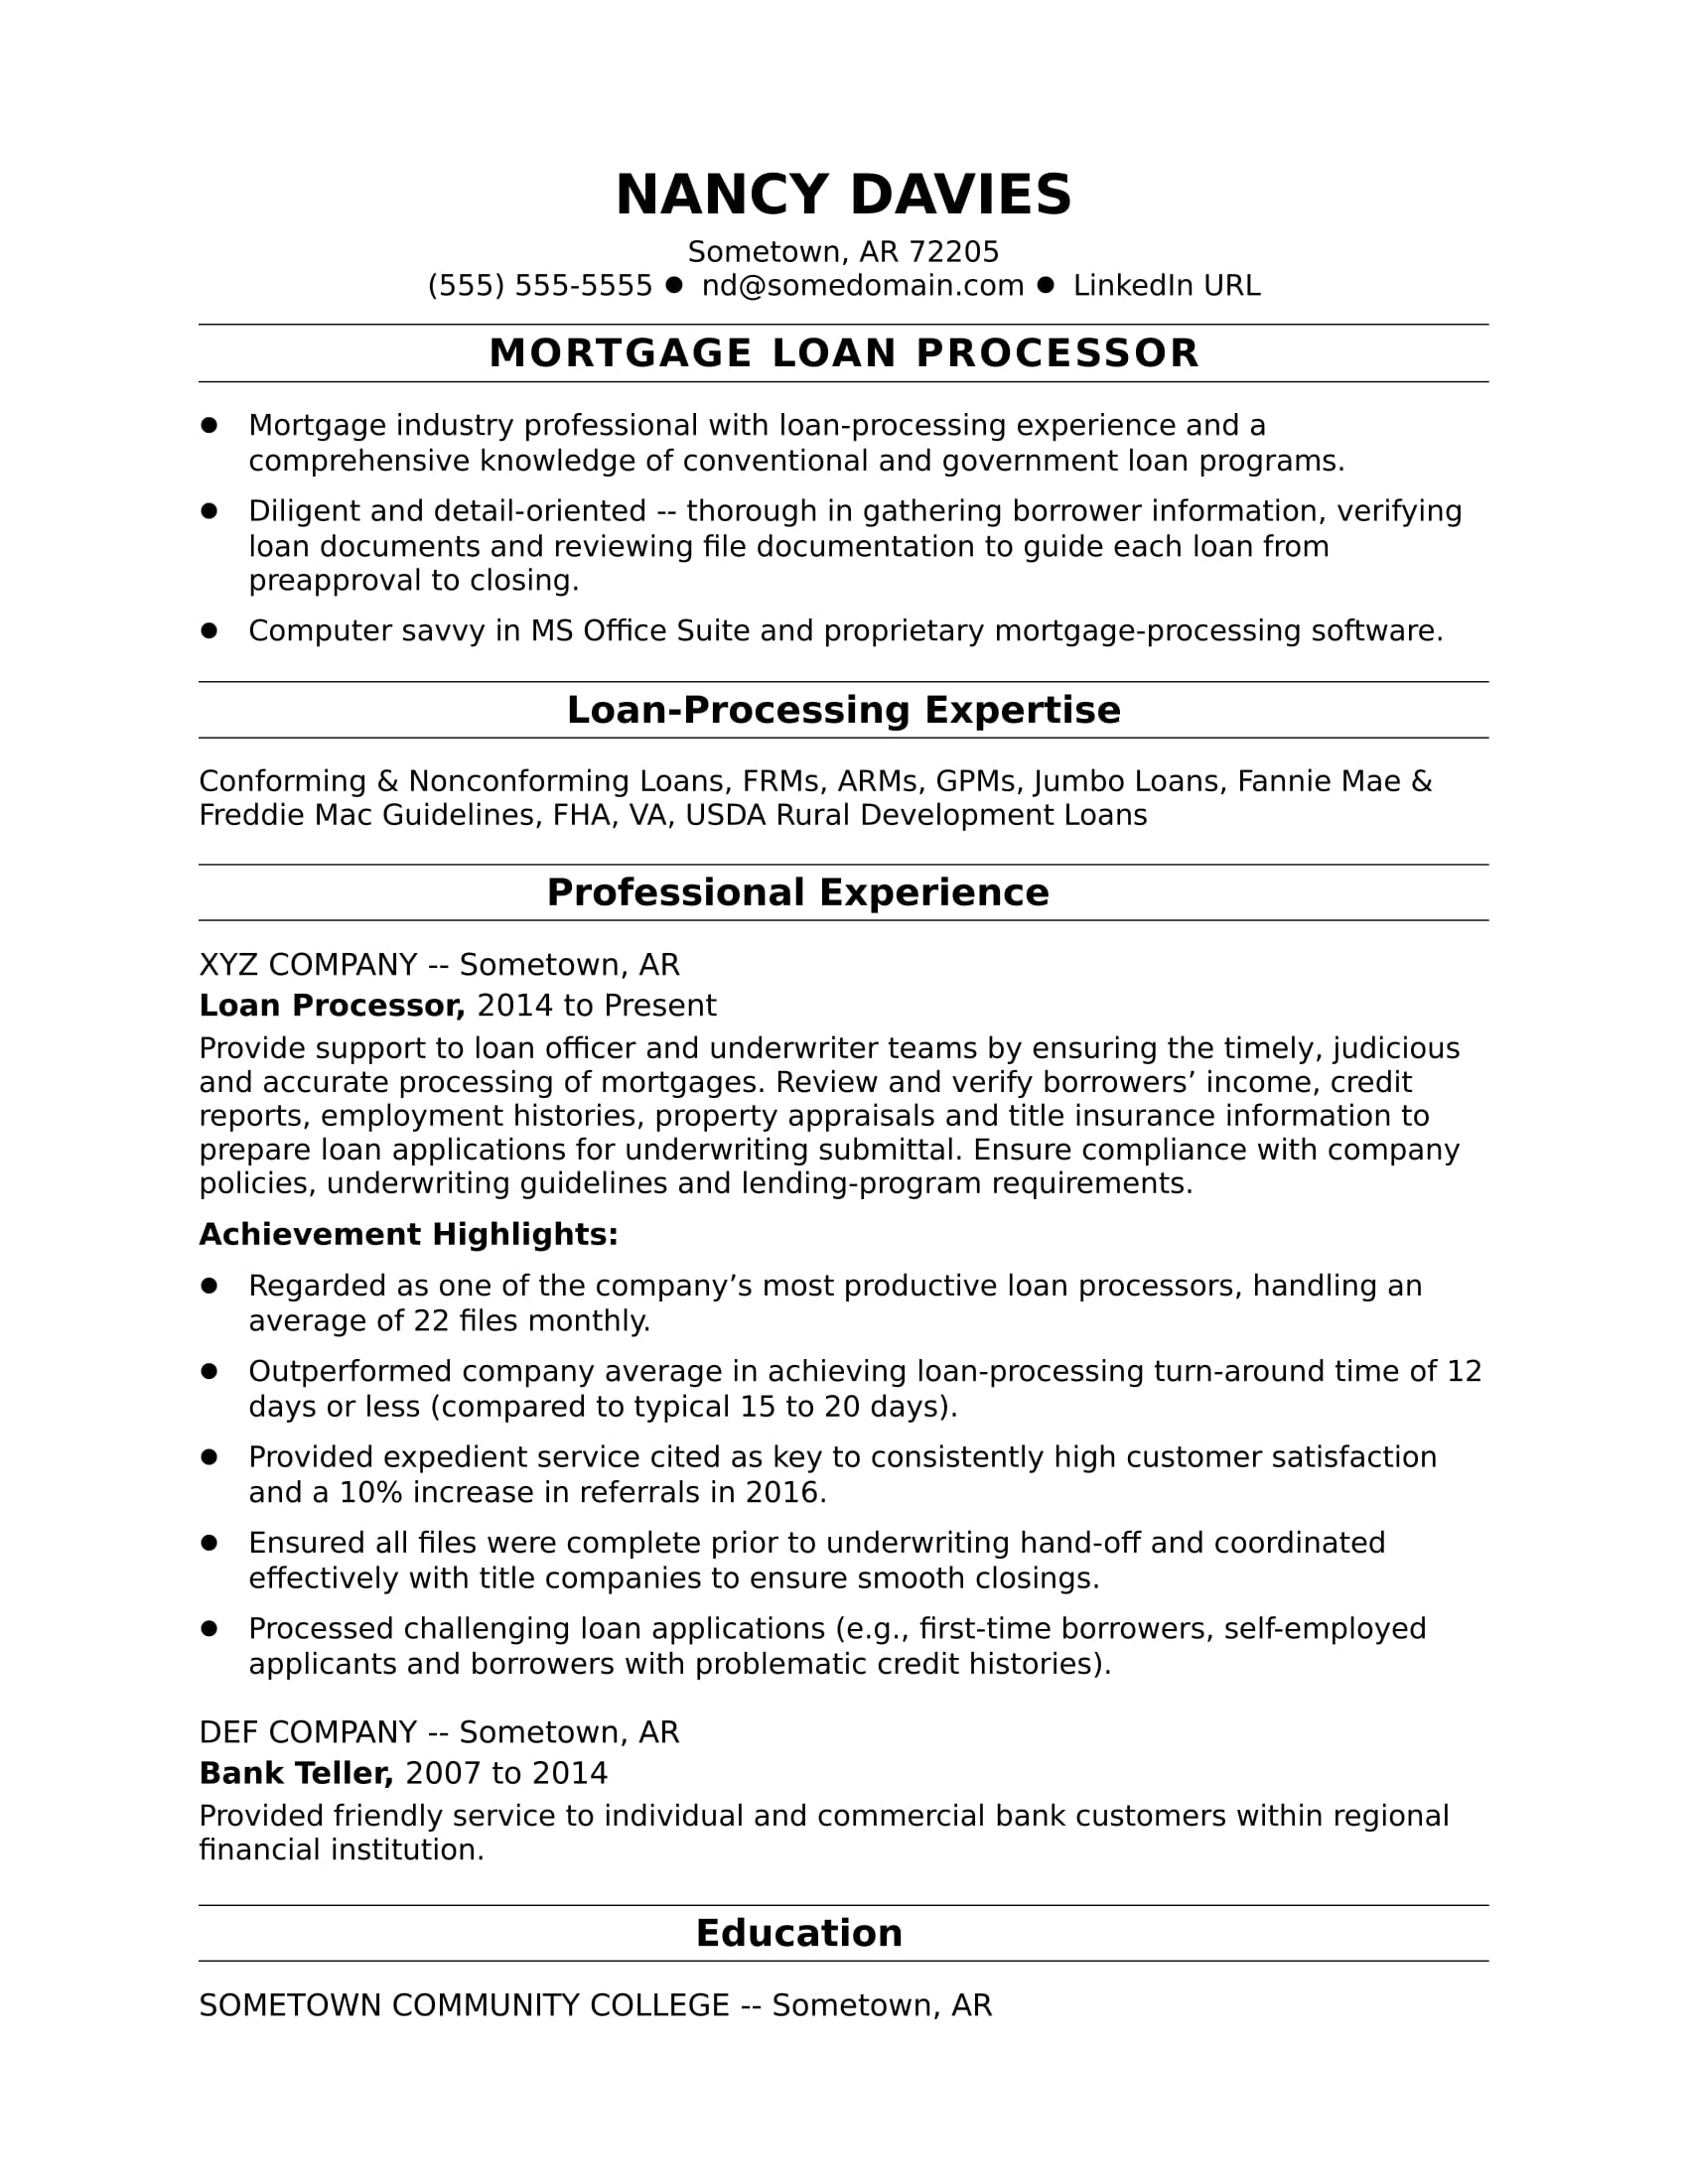 Sample Resume For A Mortgage Loan Processor  Monster Resume Samples